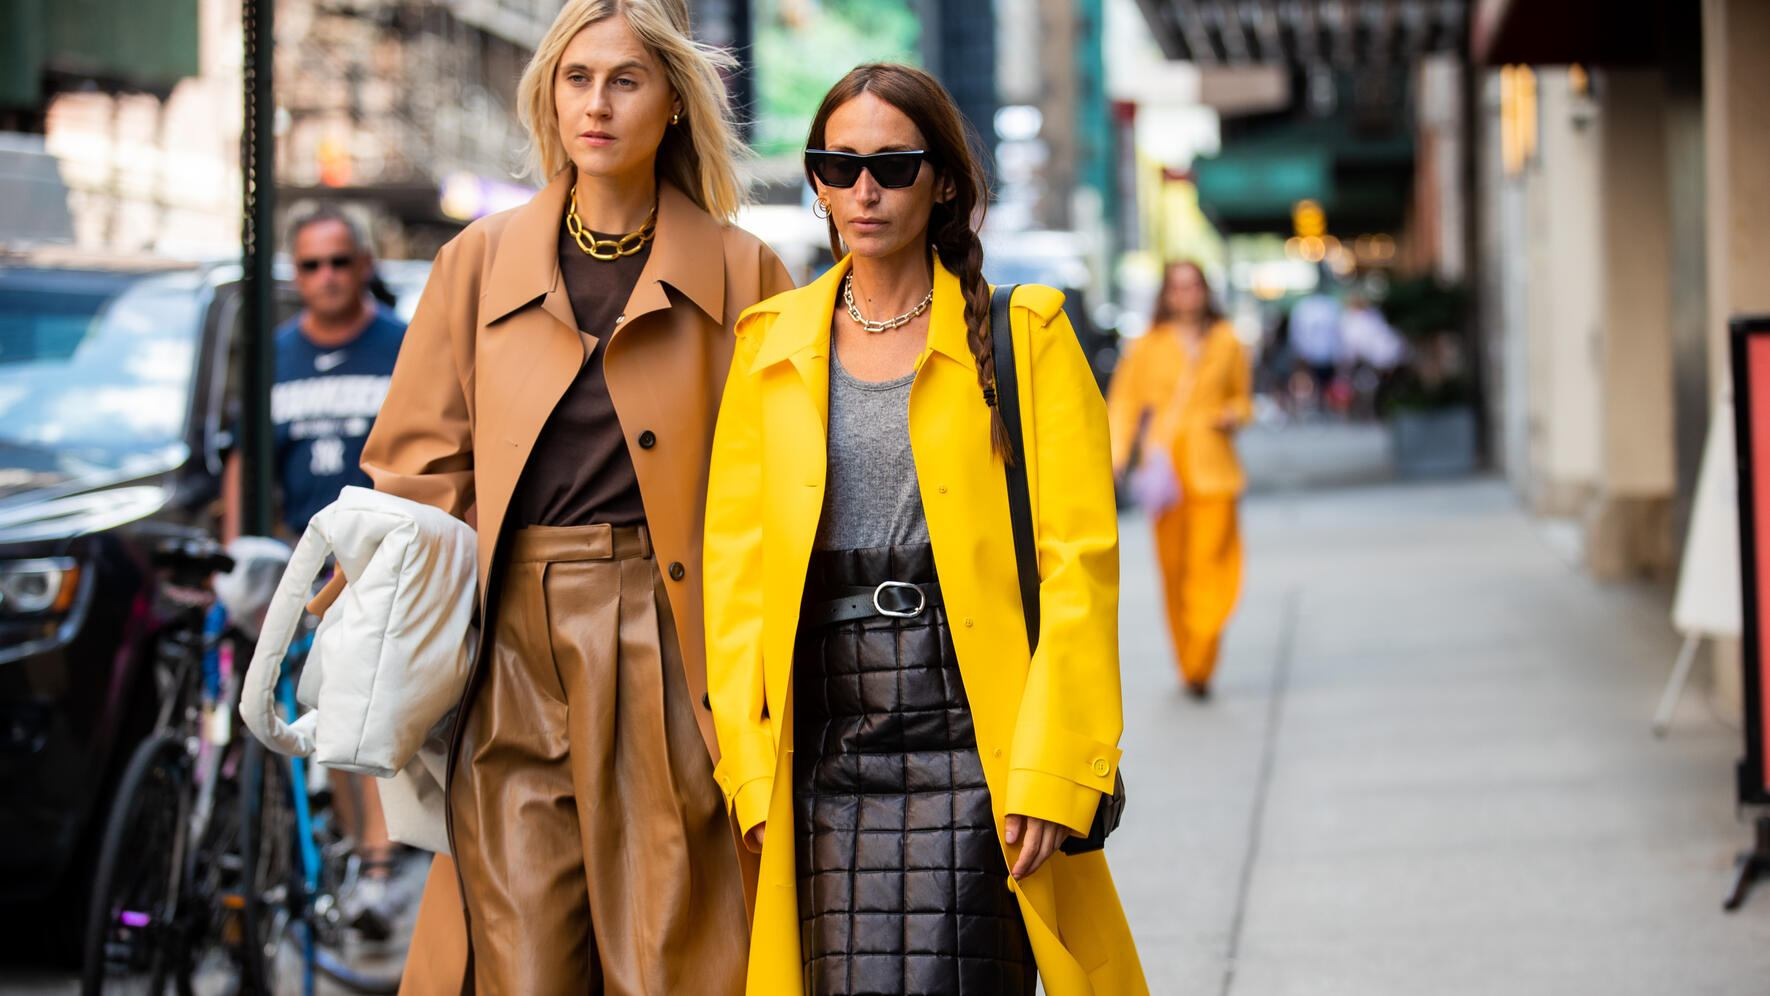 NEW YORK, NEW YORK - SEPTEMBER 08: Linda Tol wearing brown skirt, coat and Chloé Harrouche wearing yellow coat, back skirt seen outside Tibi during New York Fashion Week September 2019 on September 08, 2019 in New York City. (Photo by Christian Vierig/Getty Images)